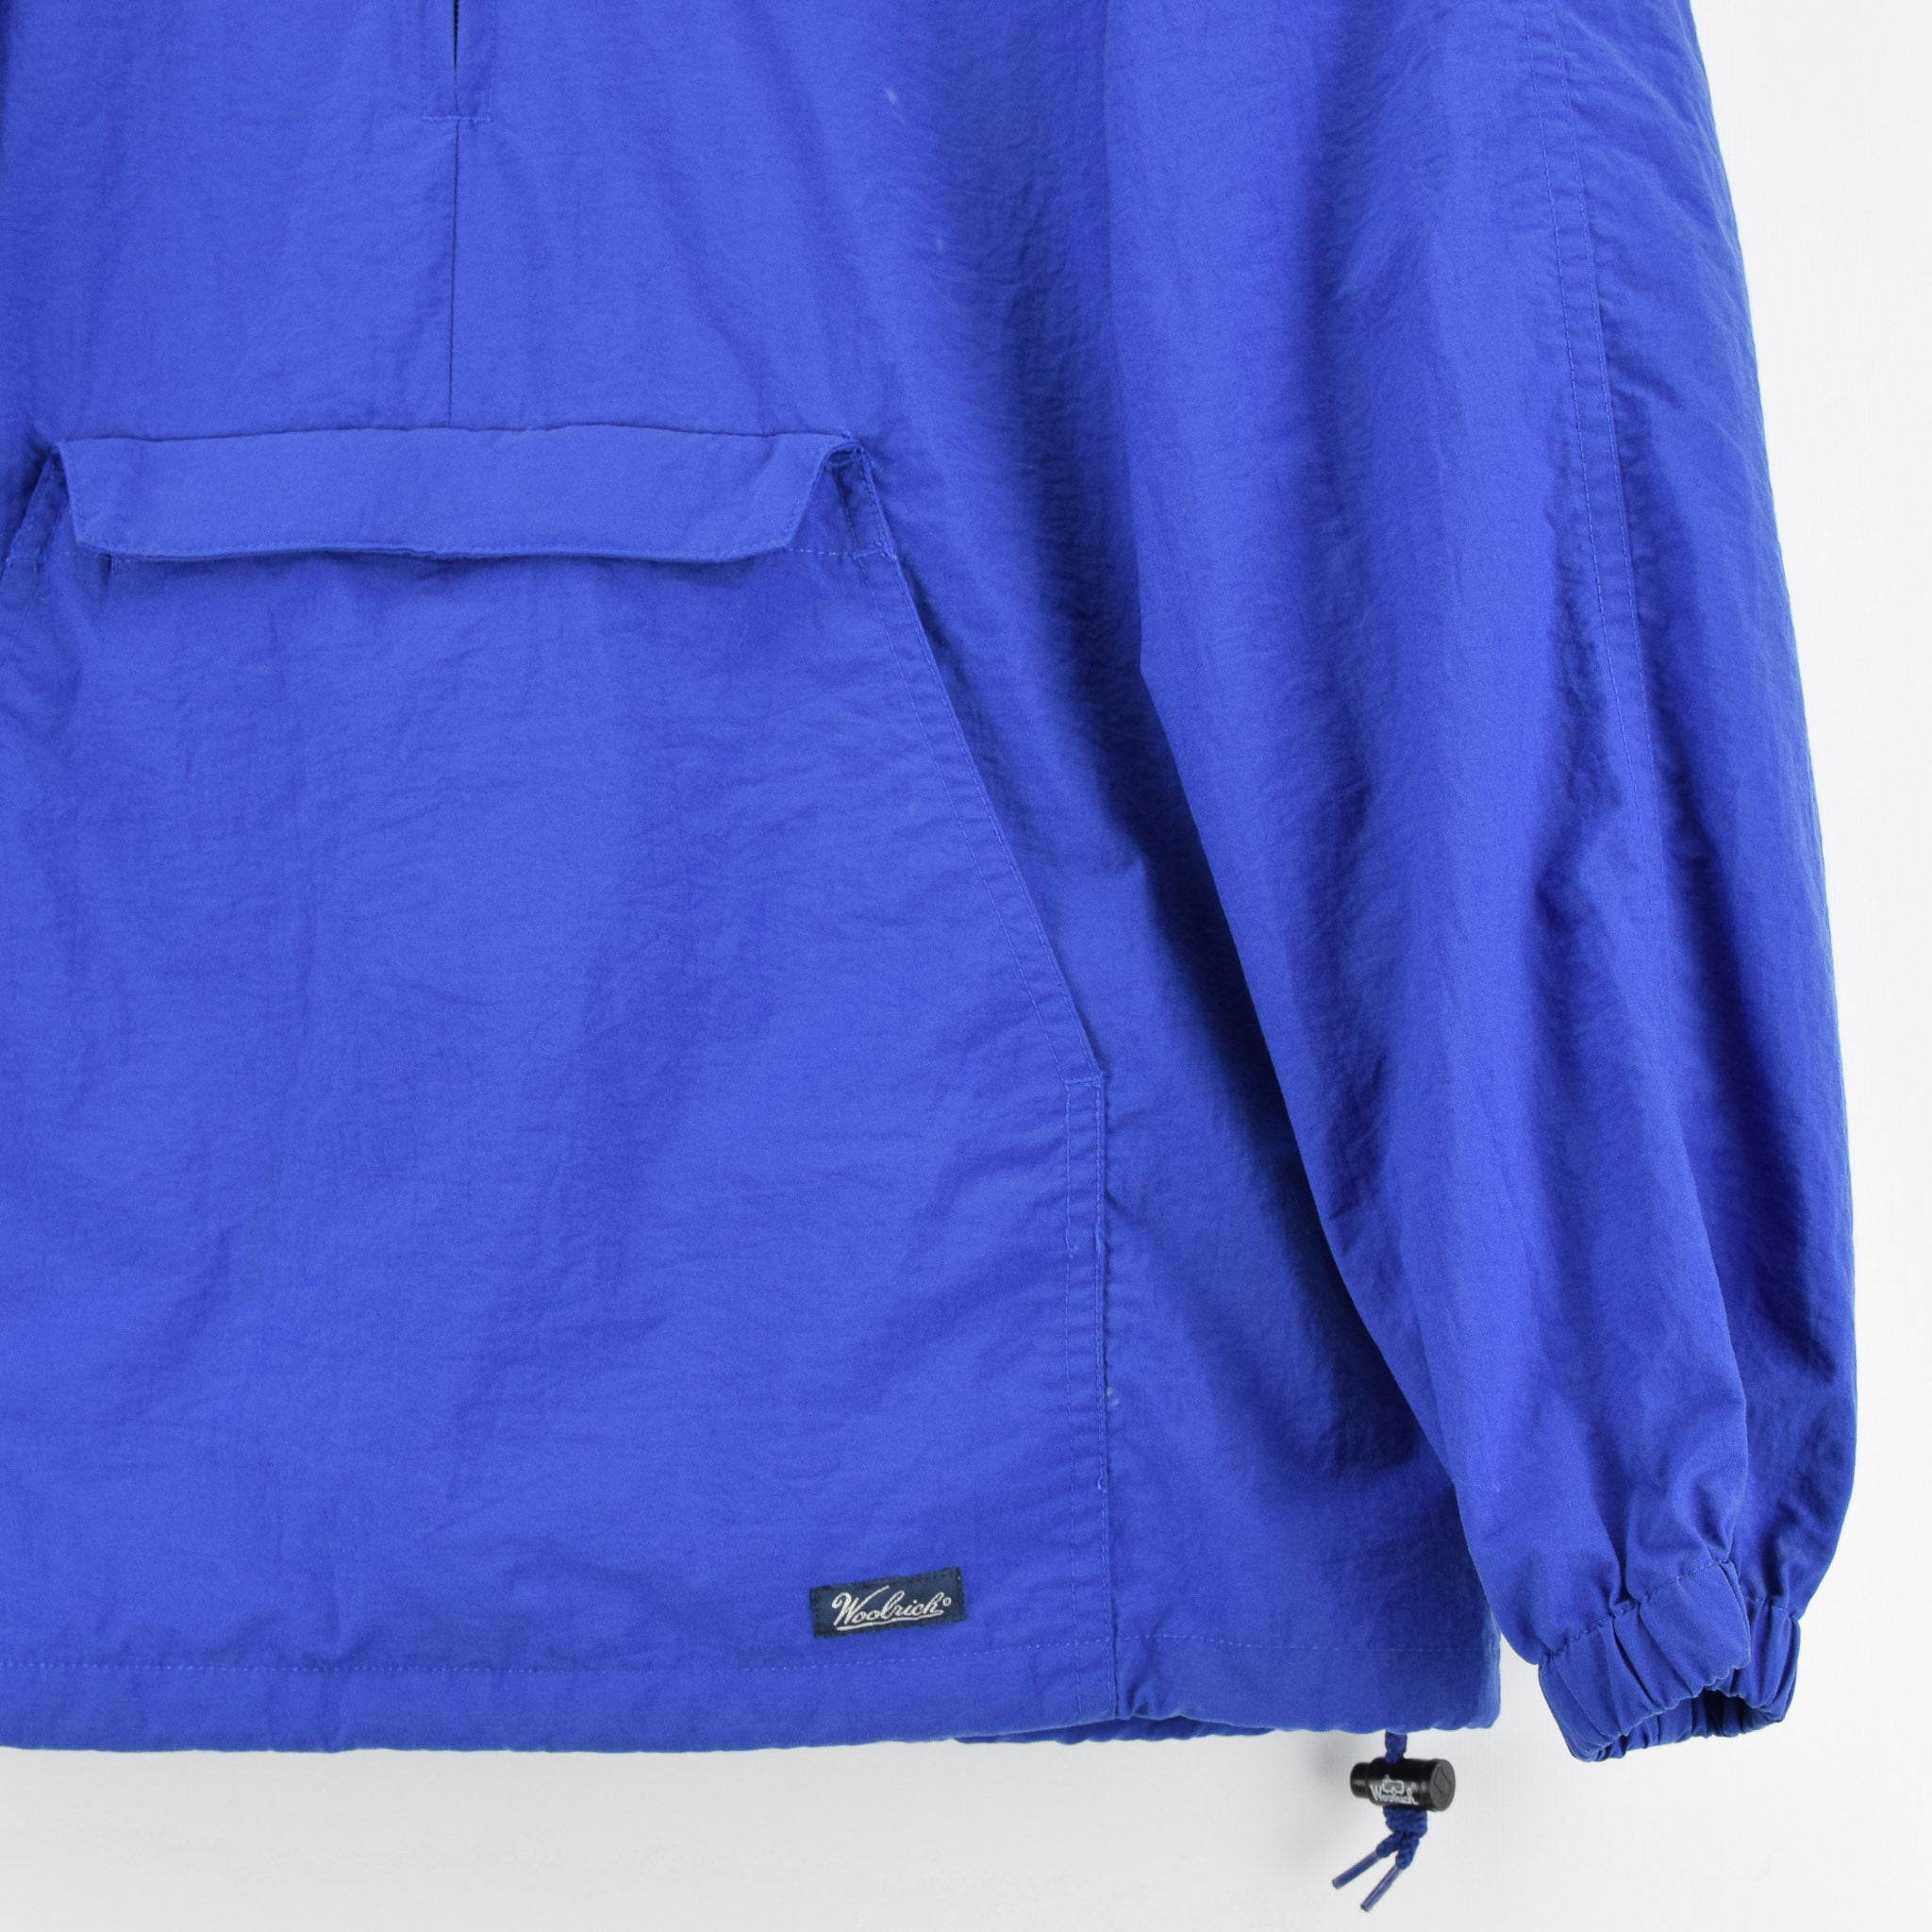 Woolrich Bright Blue Hooded Nylon Packaway Cagoule Unisex Jacket S front hem